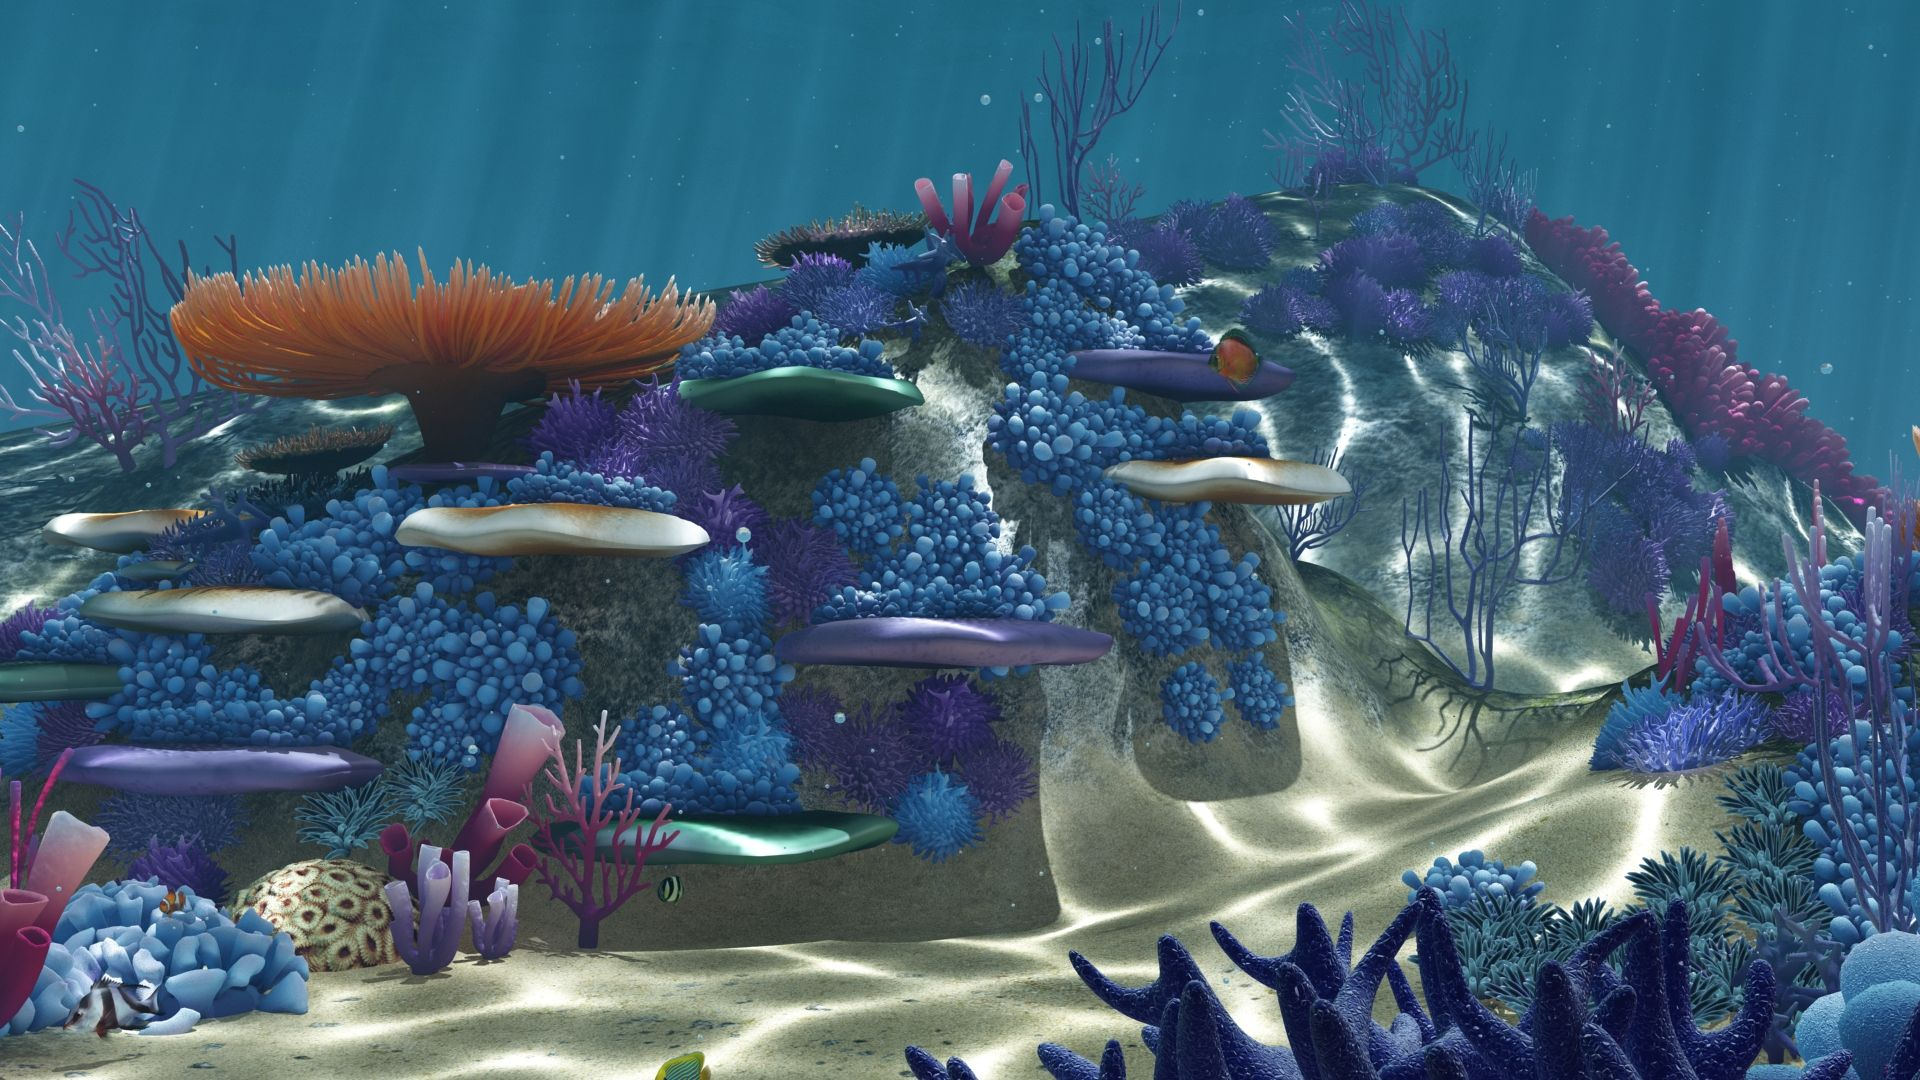 Ocean Floor Coral Reefs Cartoon Underwater Cartoon Underwater Realistic Cartoons